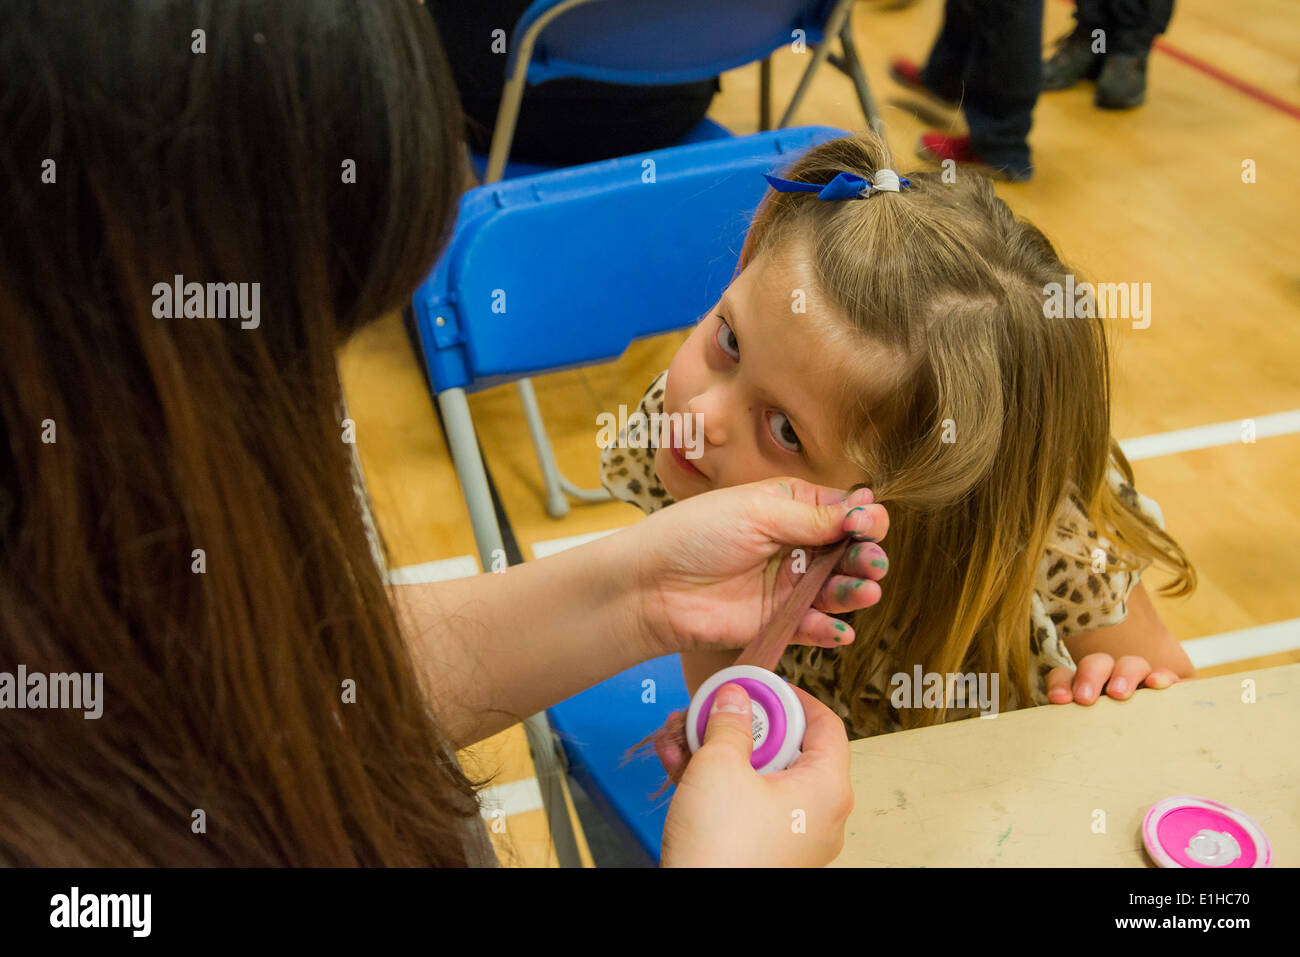 Young girl gets temporary hair chalk applied at Spring Fair, Burnaby, British Columbia, Canada - Stock Image